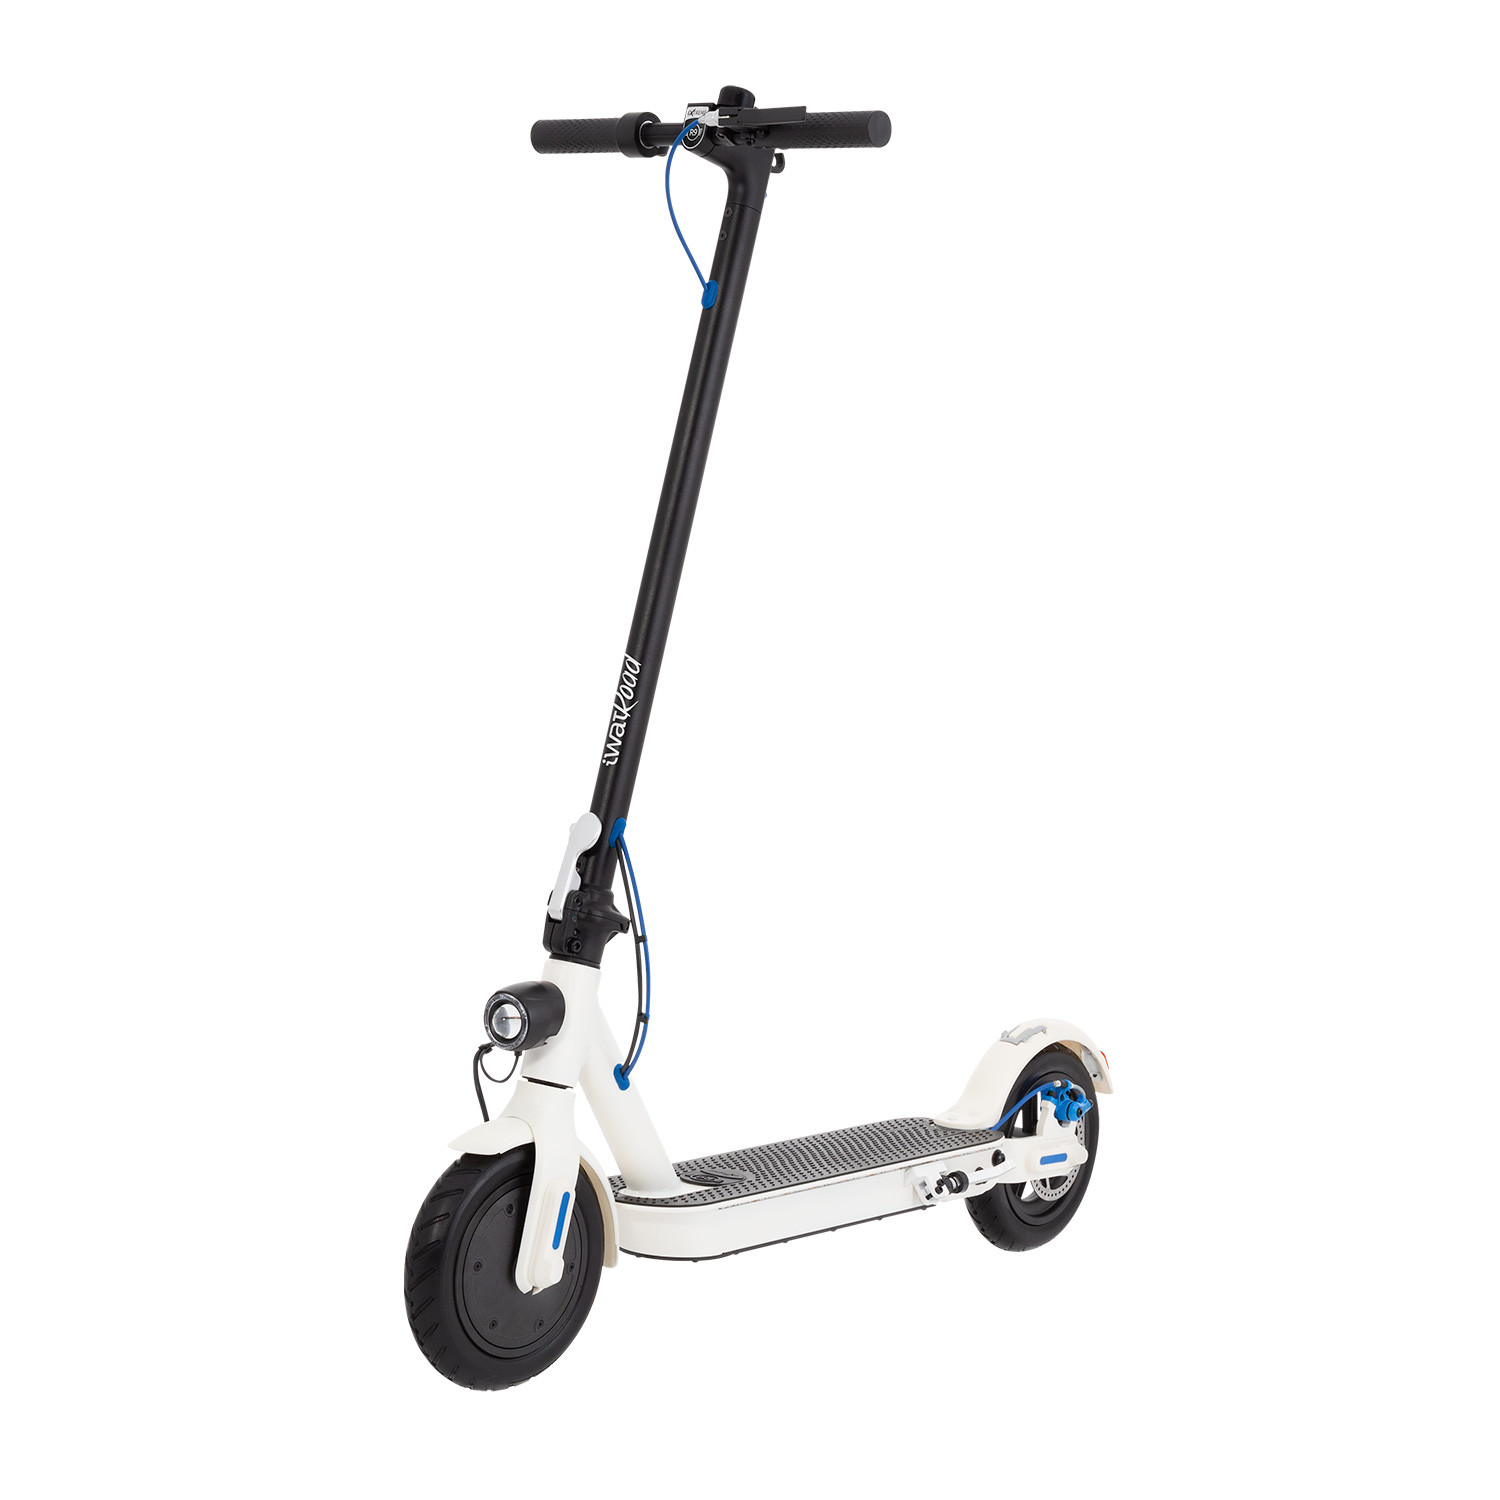 electric scooter comparison IWatMotion iWatBoard R9 Extreme